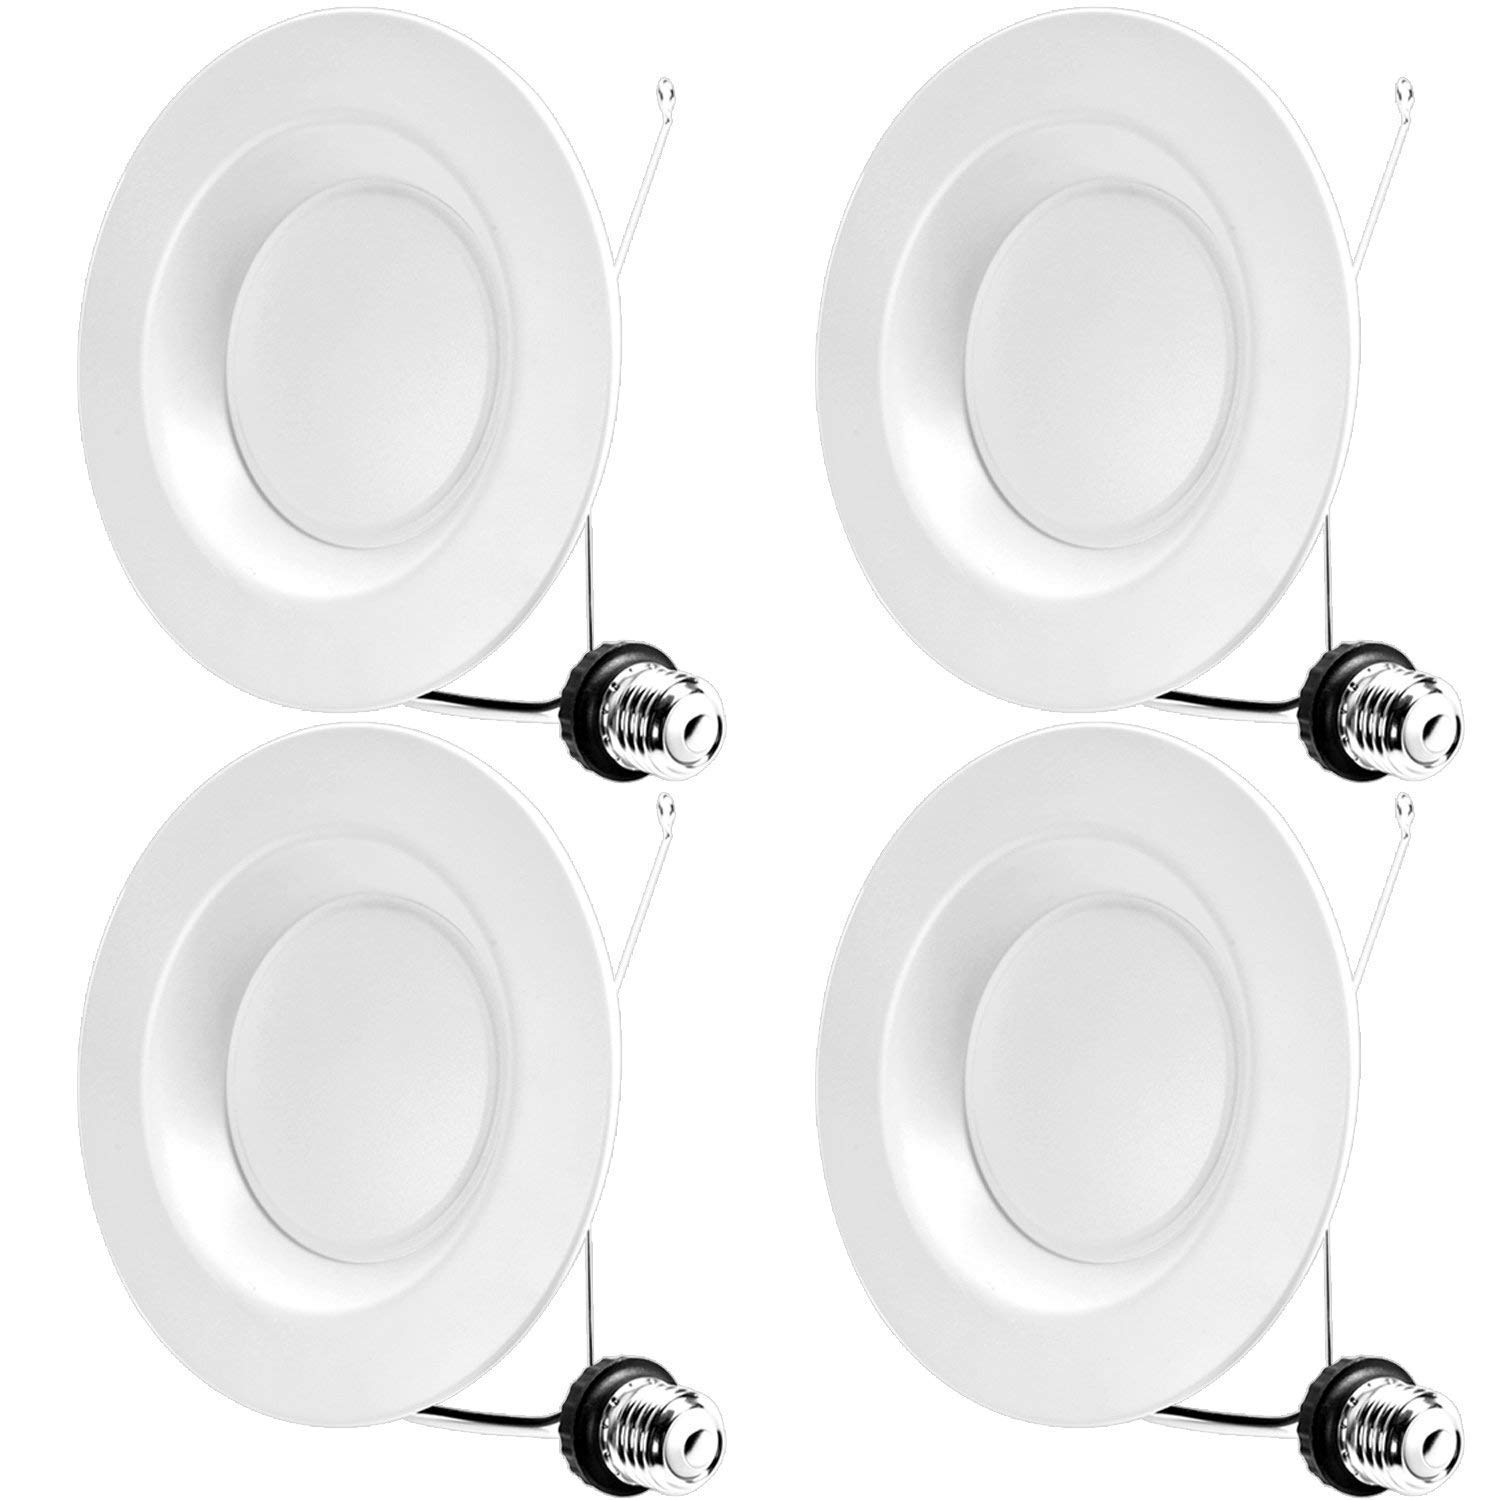 Hykolity 6 Inch LED Recessed Downlight, 15W 1100LM Dimmable Retrofit Recessed Can Downlight, 4000K Neutral White, Damp Location, 65W BR30 replacement- 4 Pack